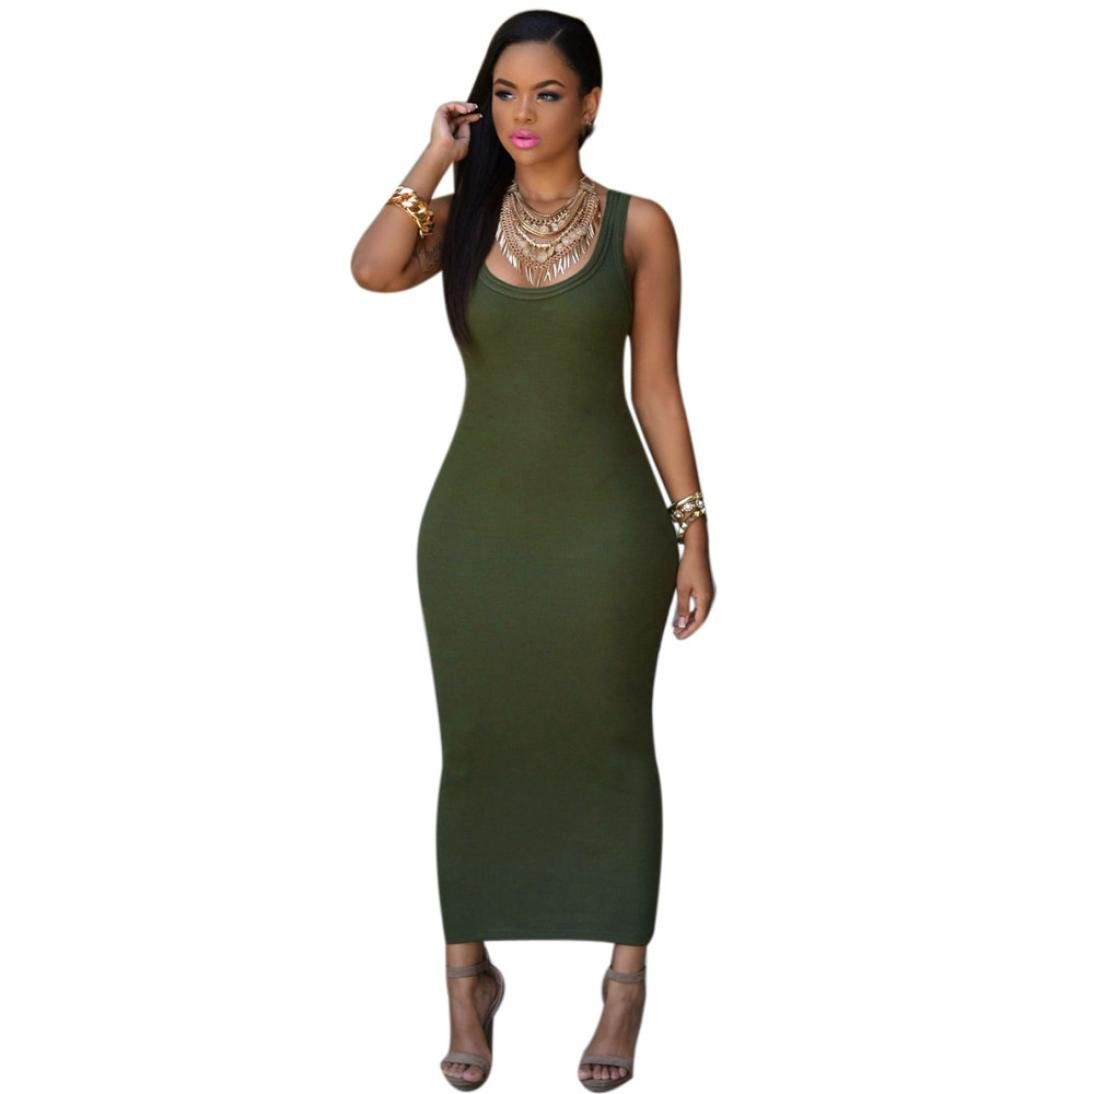 96344eee4f306 Amazon.com: Usstore Women Dress Bandage Bodycon Party Cocktail Maxi Long  Dresses: Clothing